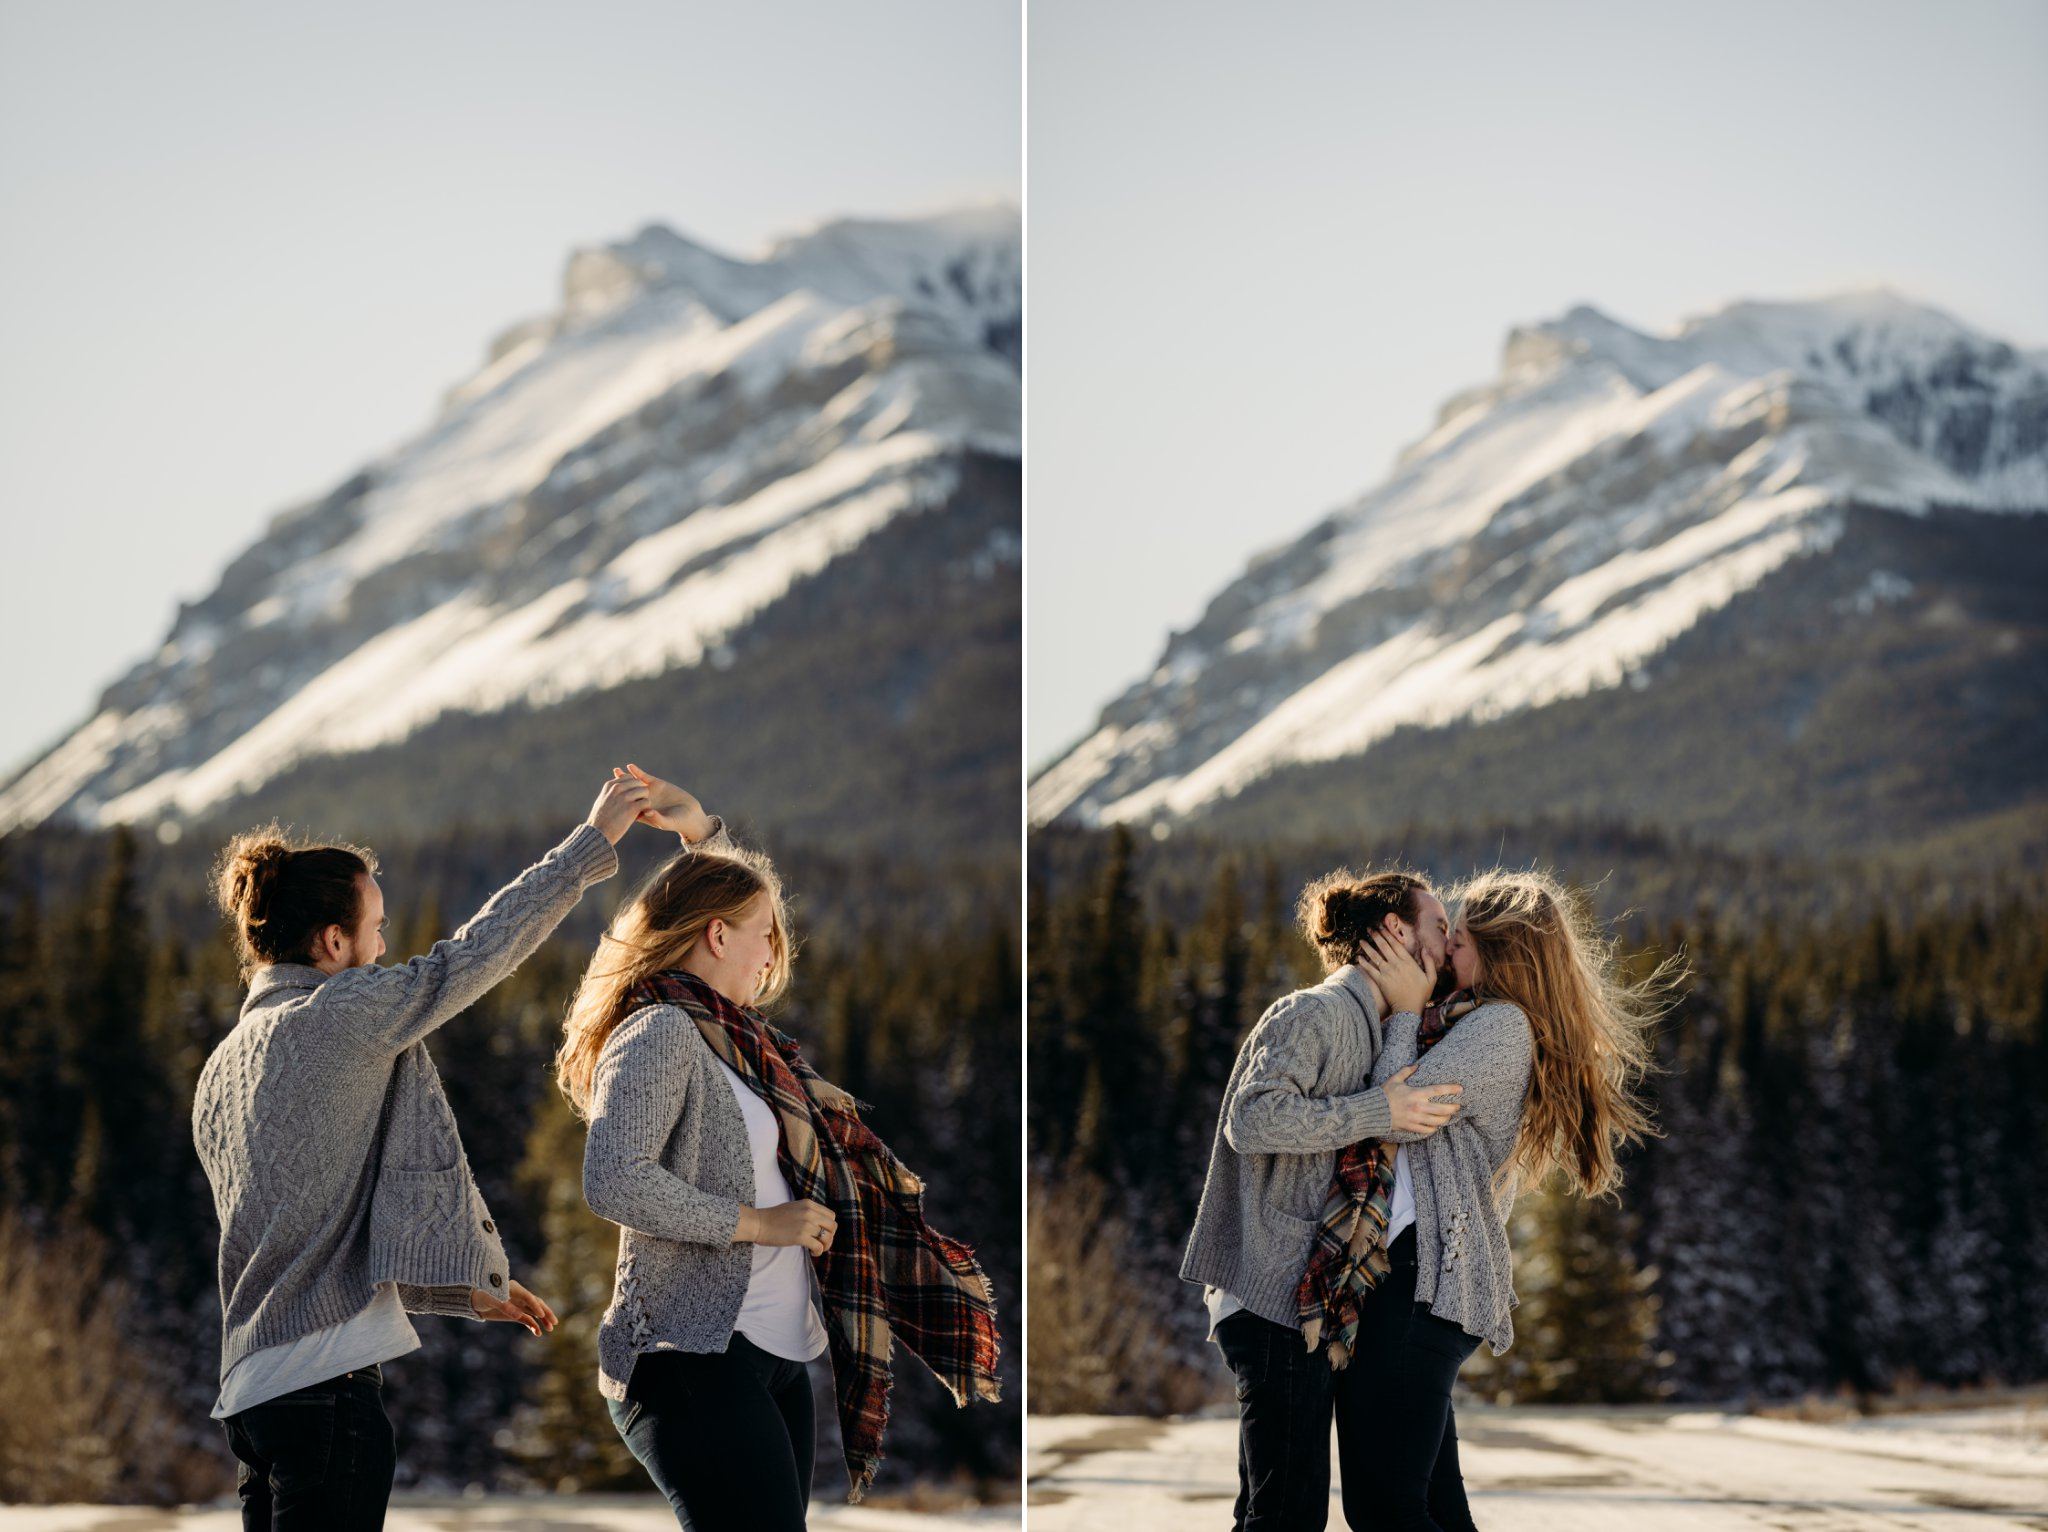 AshleyDaphnePhotography Calgary Photographer Wedding Engagement Sheep River Provincial Park Photos Kananskis Rocky Mountain Canmore Photographer_0003.jpg